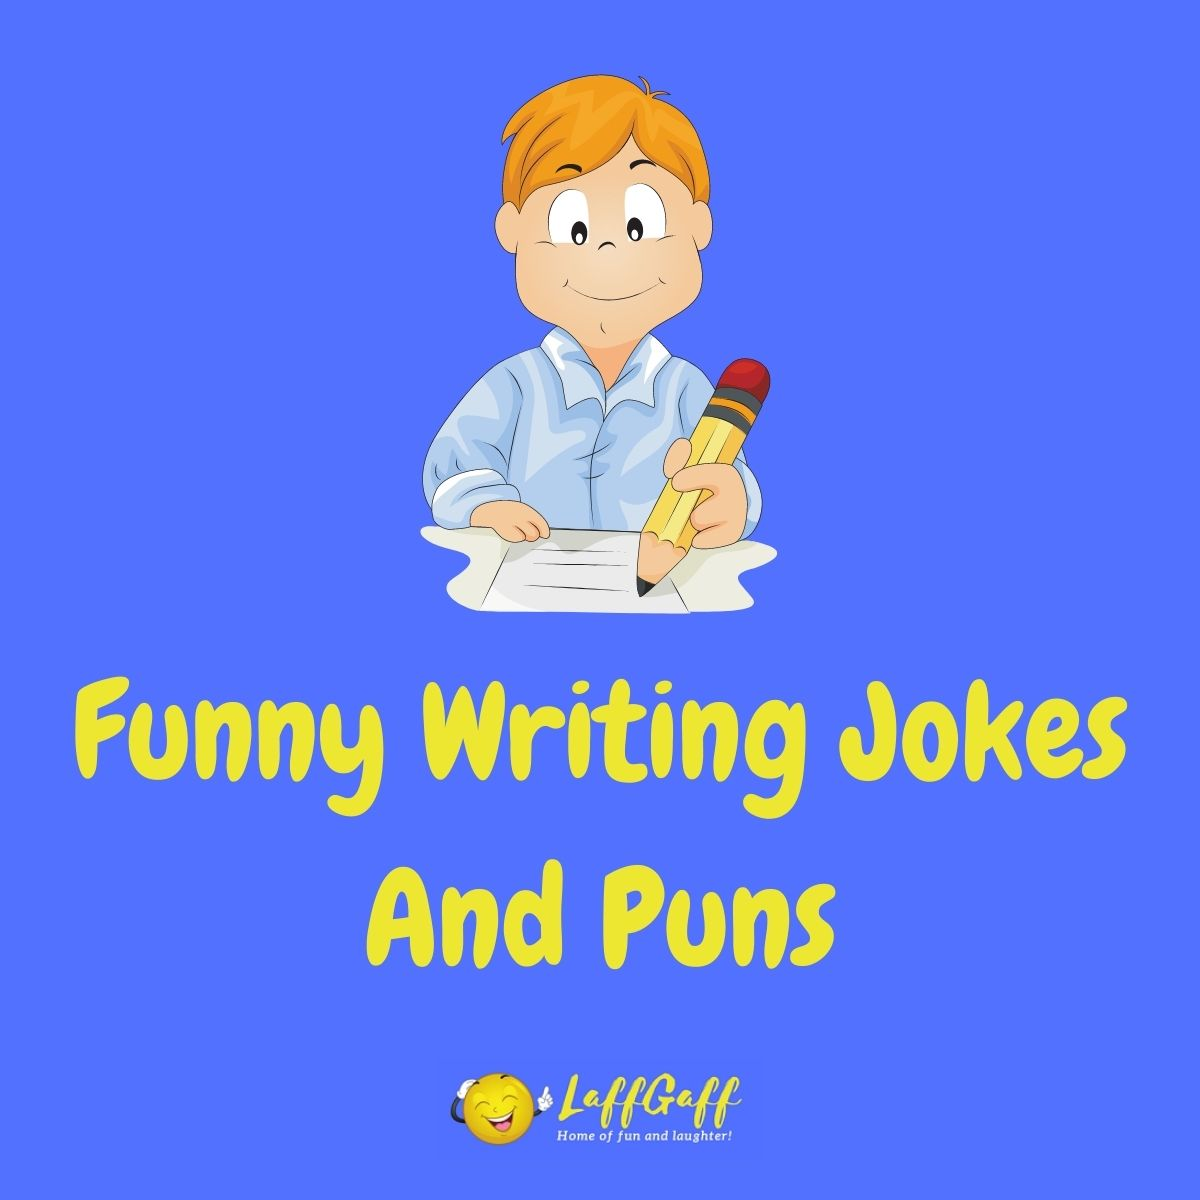 Featured image for a page of funny writing jokes and puns.